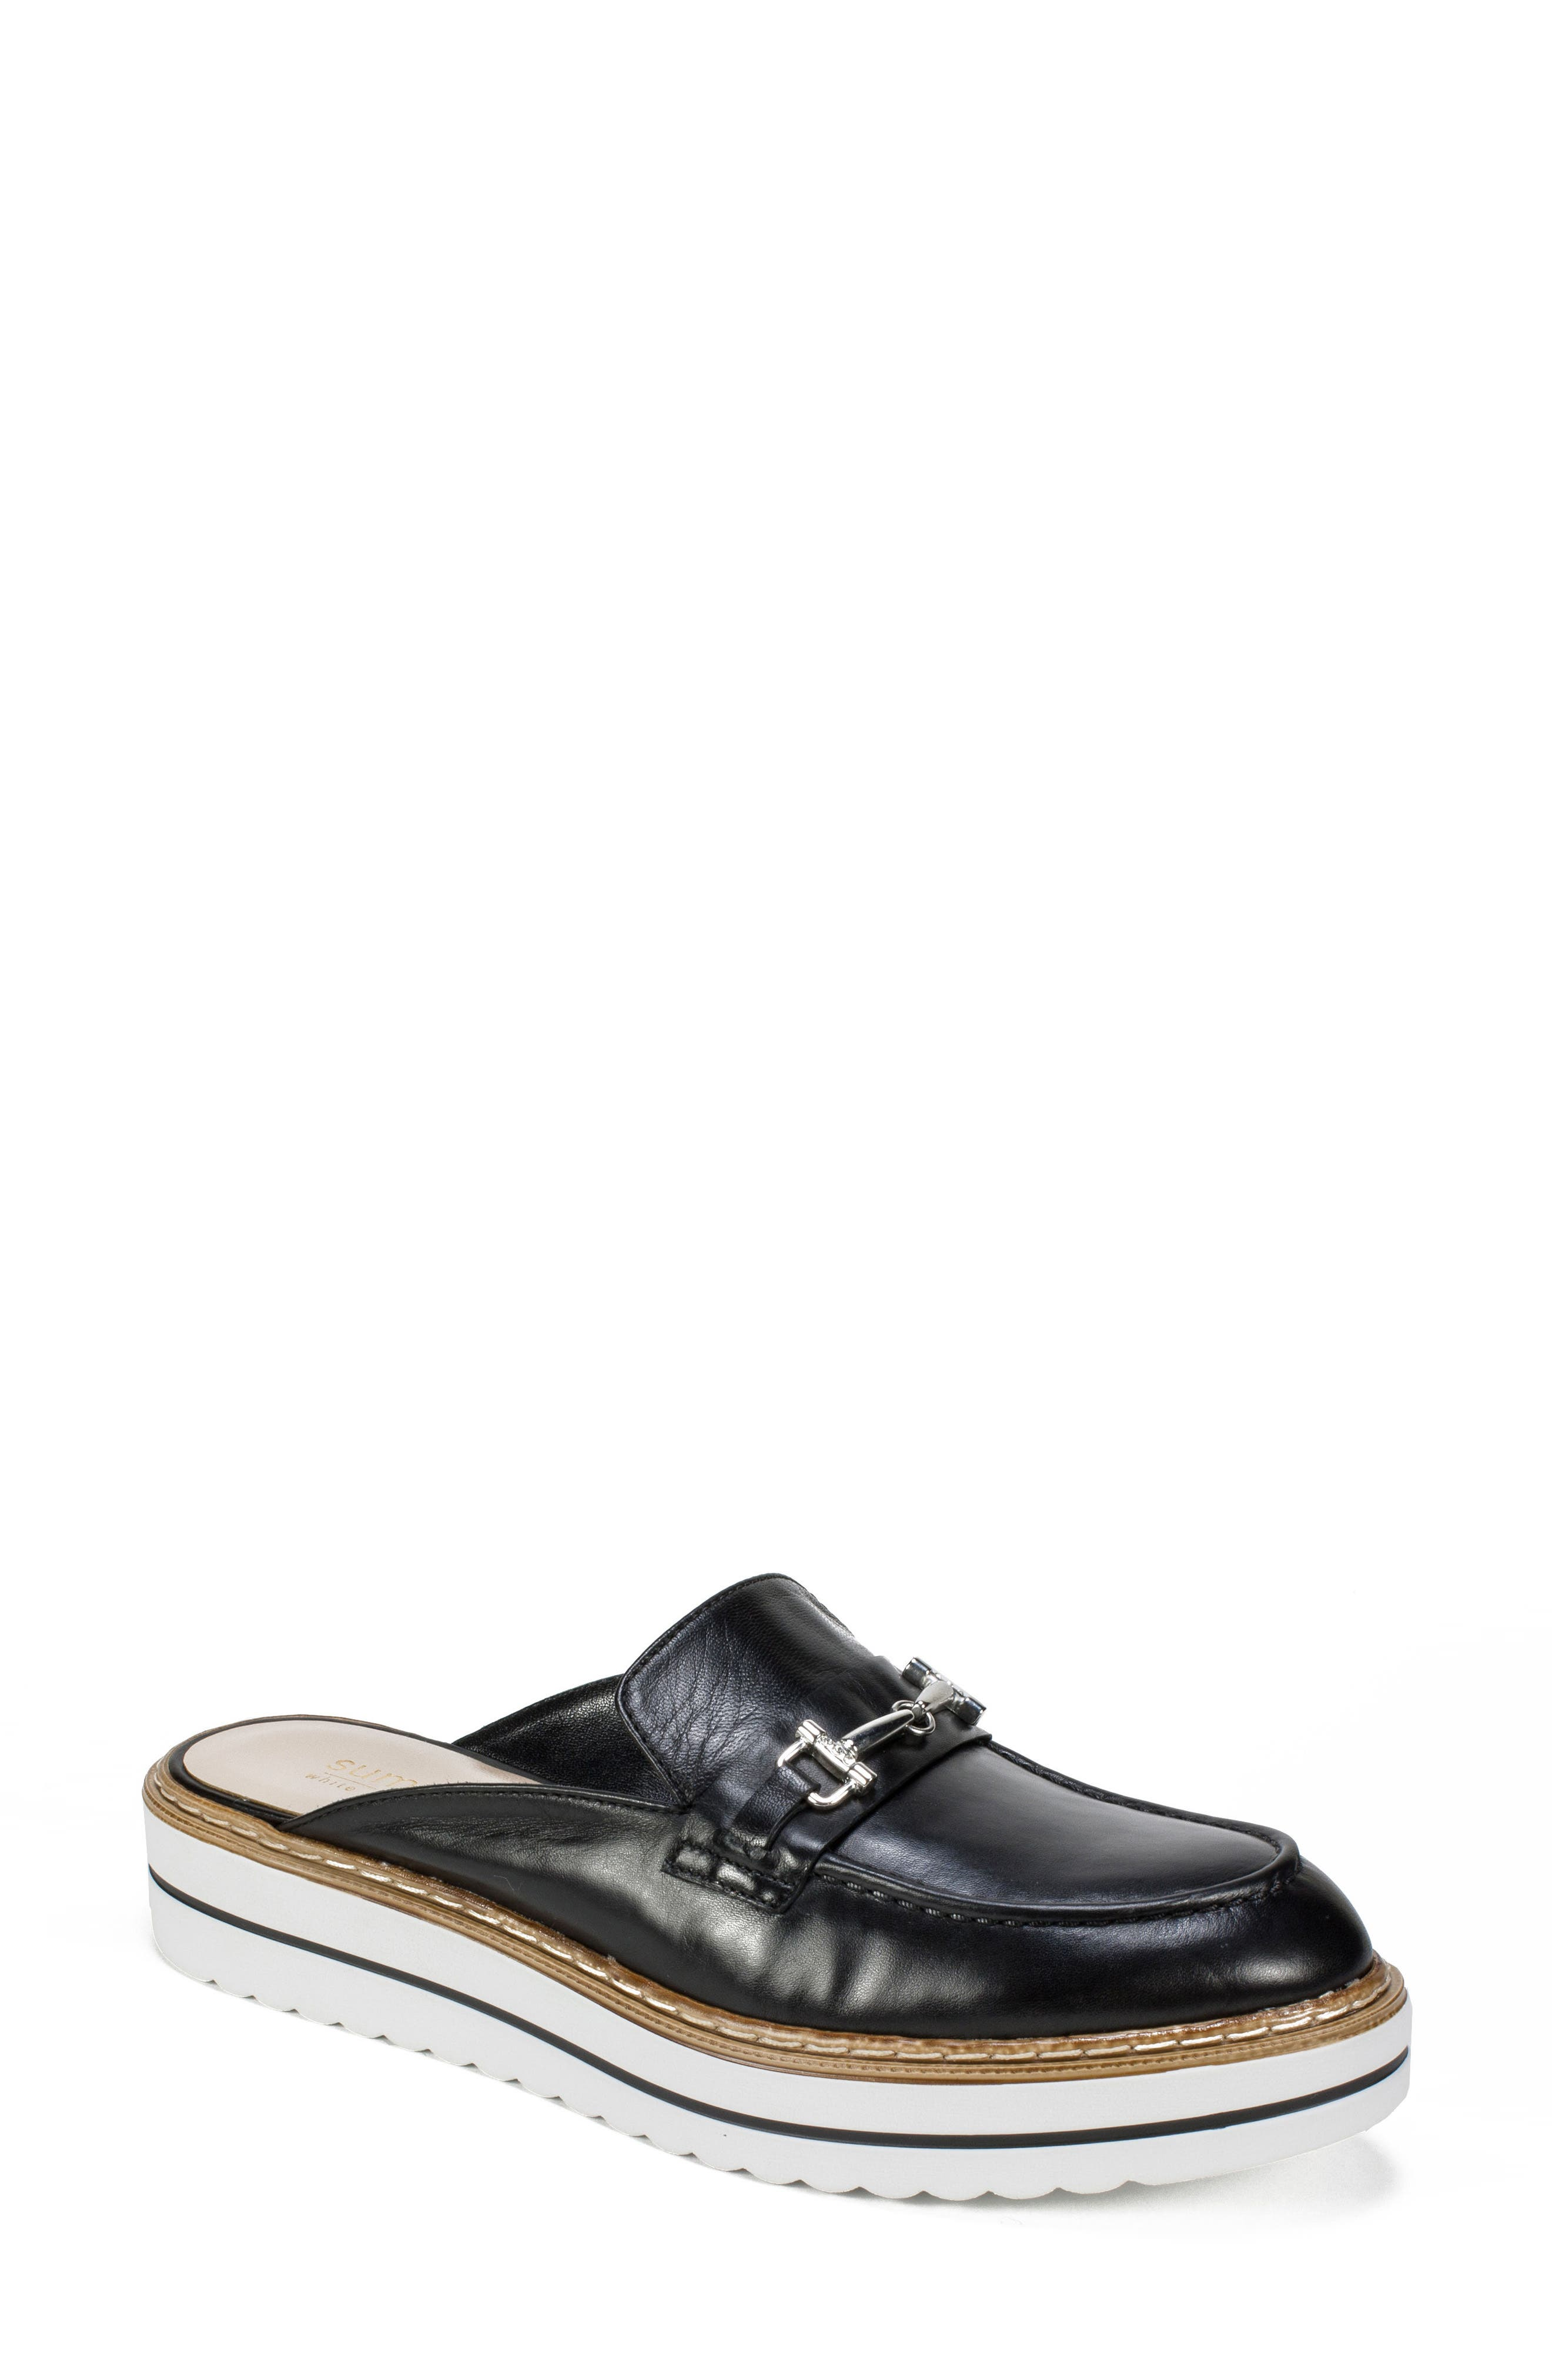 by White Mountain Baline Mule,                         Main,                         color, Black Leather